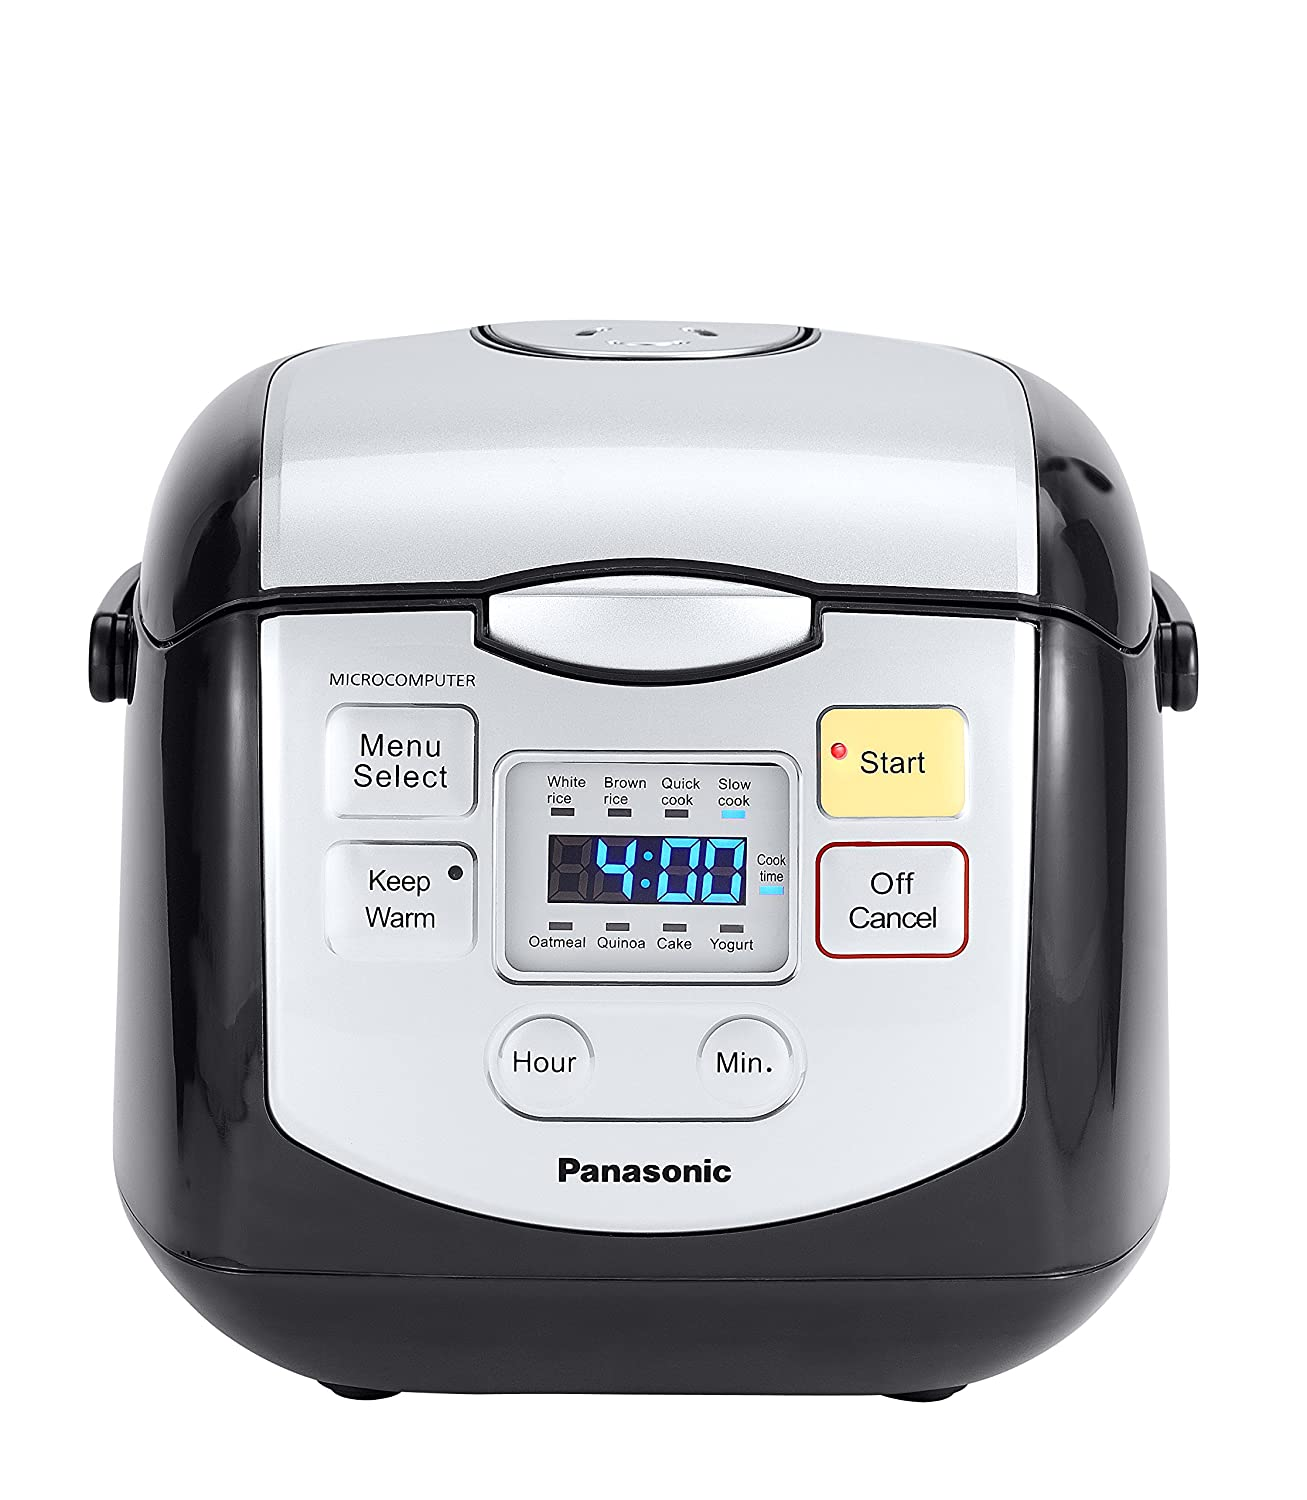 Panasonic 4 Cup (Uncooked) Microcomputer Controlled Rice Cooker, Black/Silver SR-ZC075K